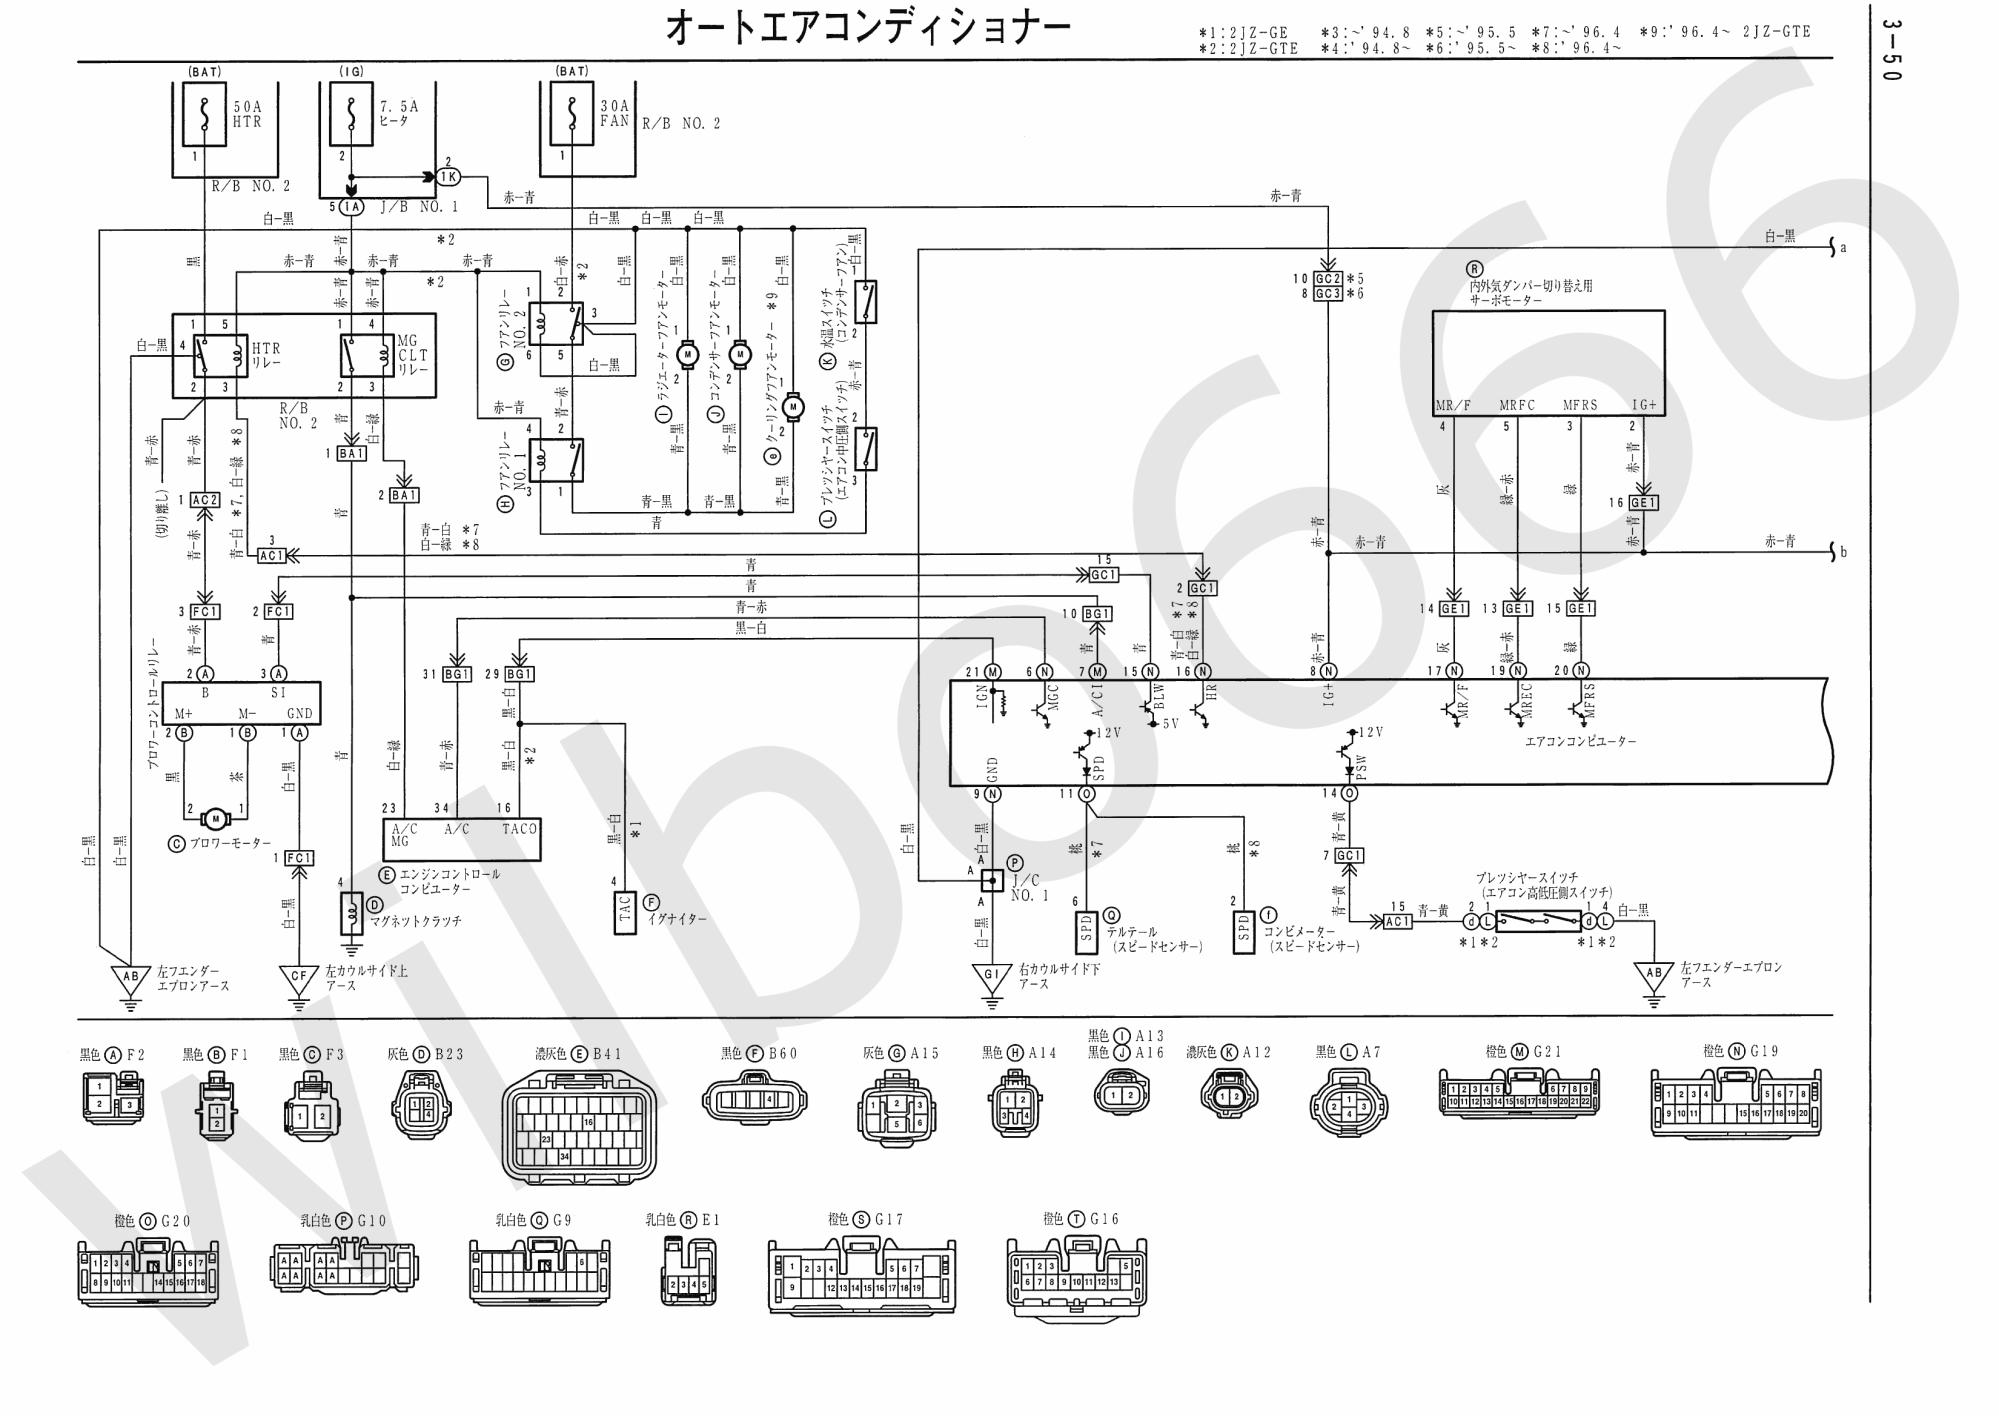 hight resolution of toyota supra wiring diagram wiring diagramwilbo666 2jz gte vvti jza80 supra engine wiringjza80 electrical wiring diagram